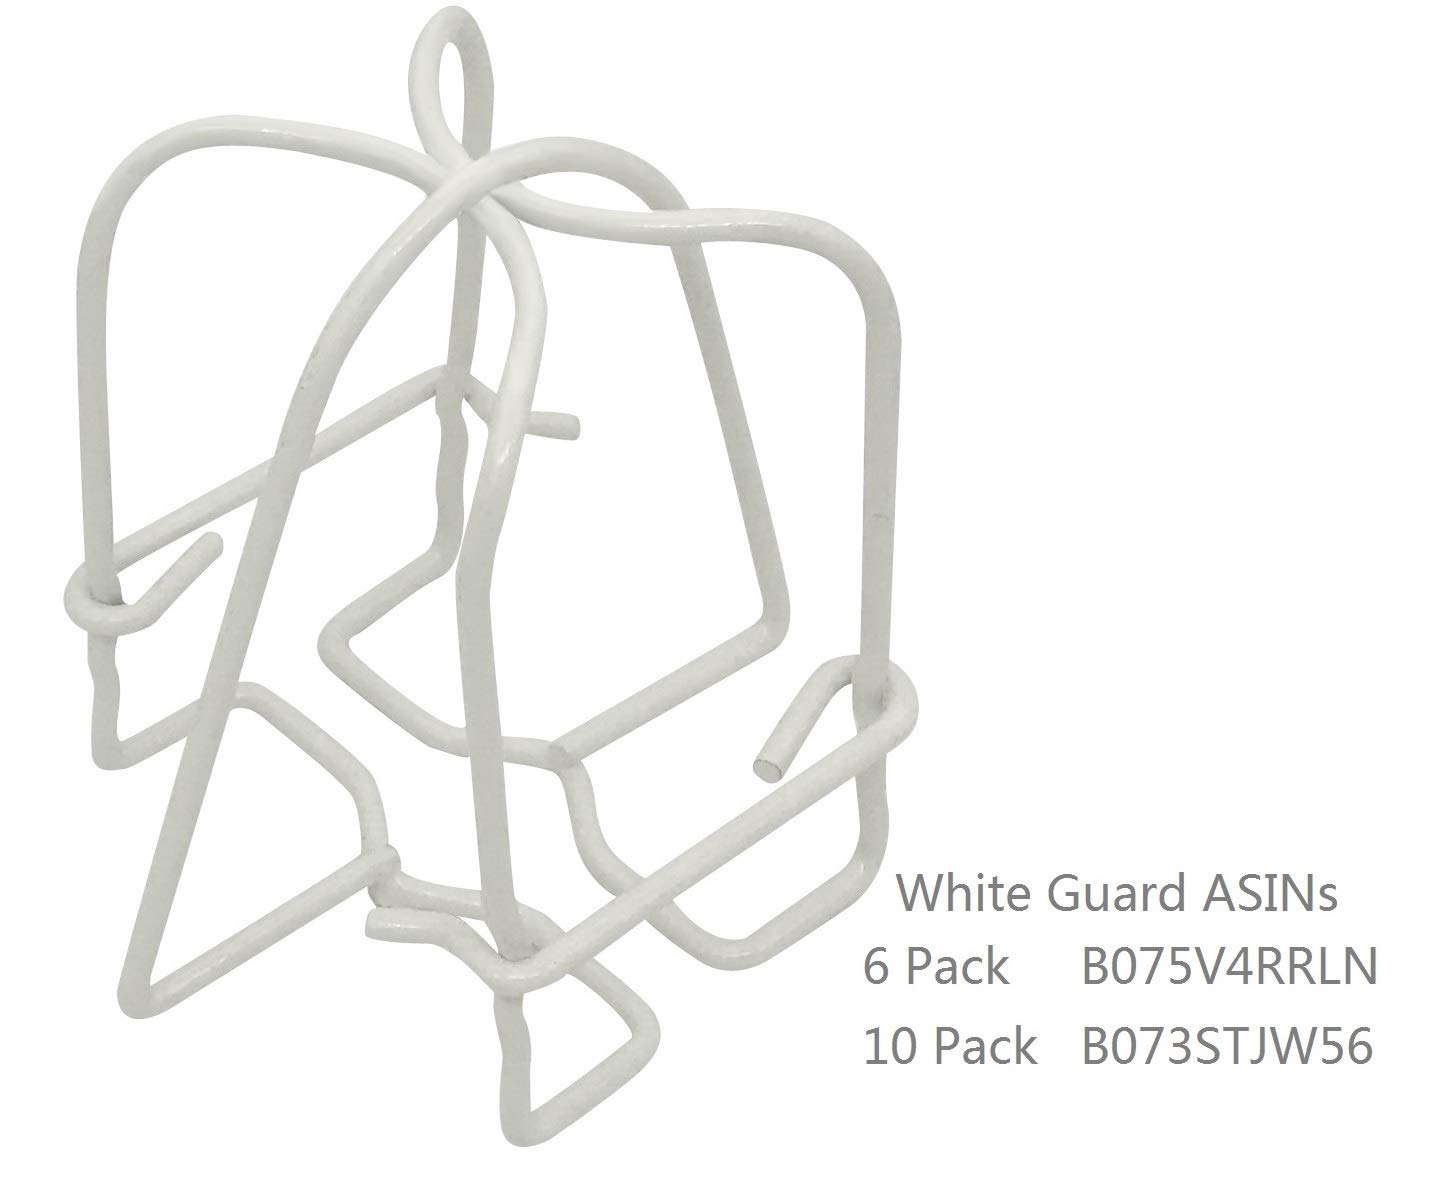 1//2 IPS White Guard Fire Sprinkler Head Cage Double Hook 10 Pack